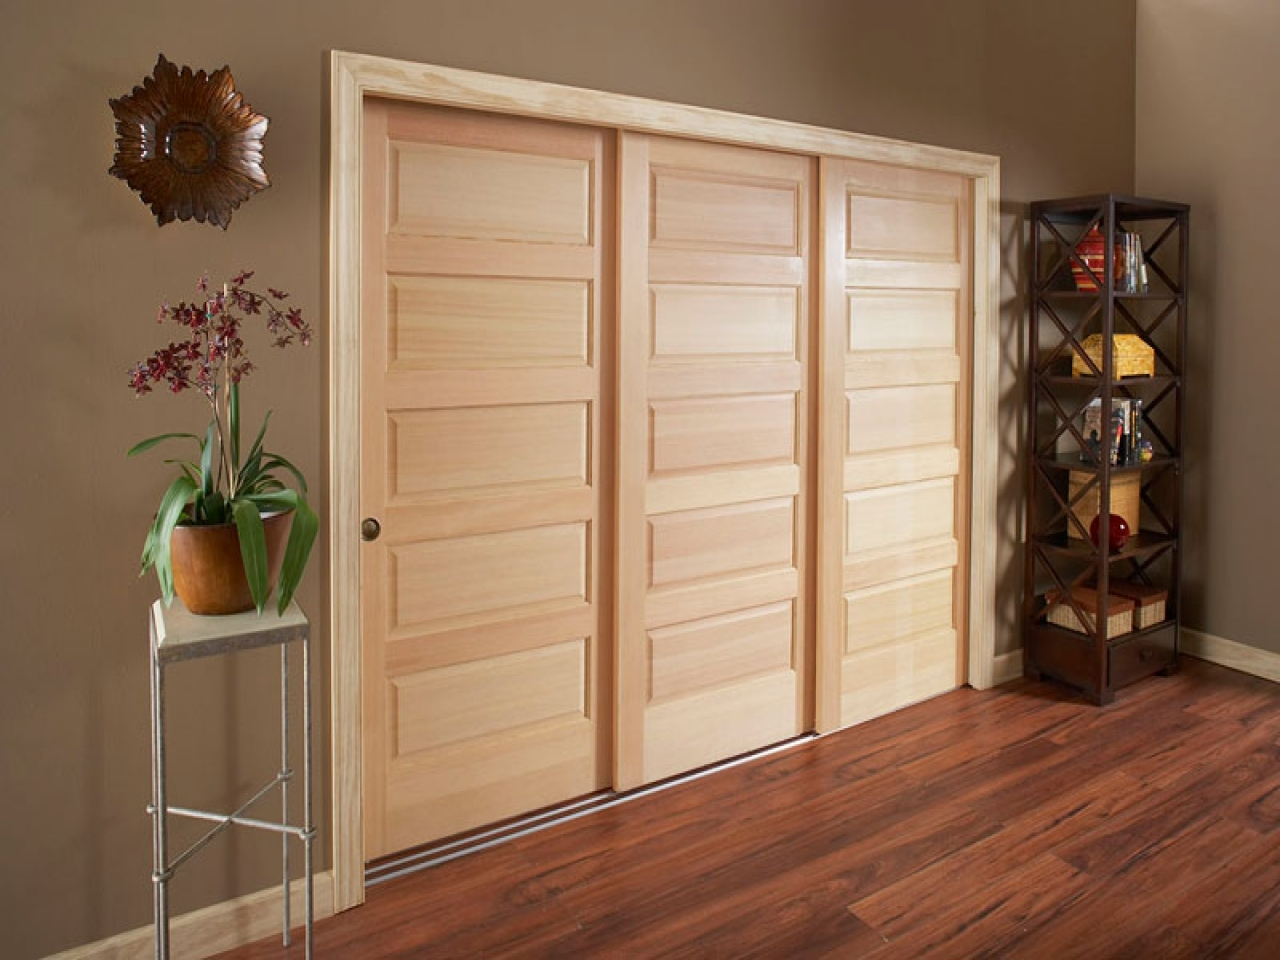 Triple Sliding Closet Doors1280 X 960